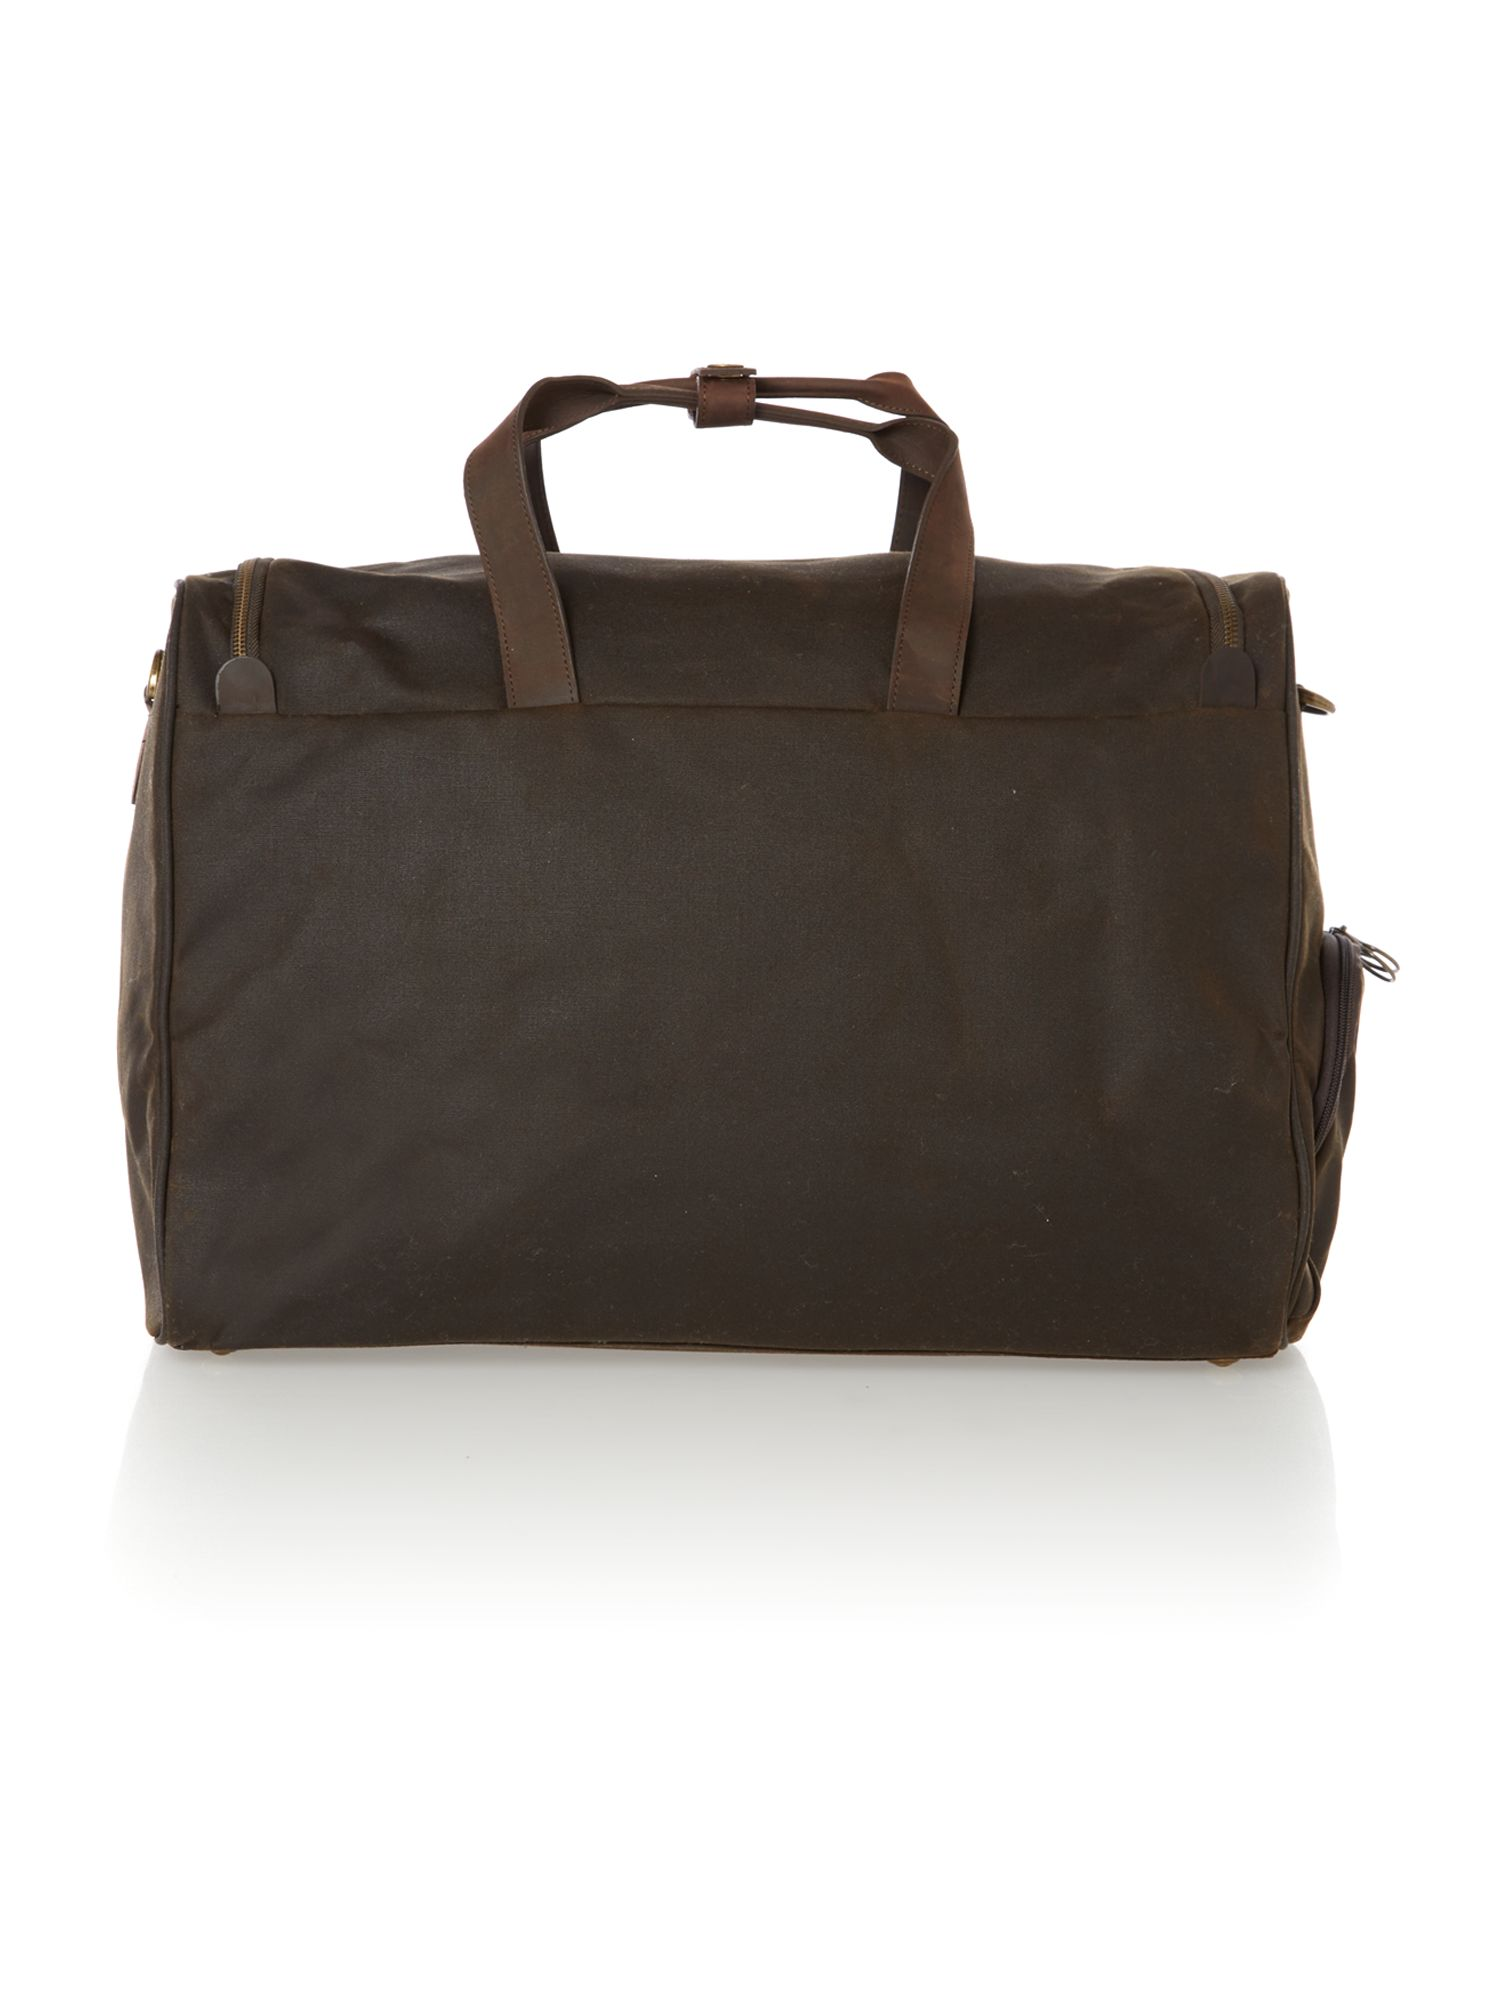 Field navy duffle bag